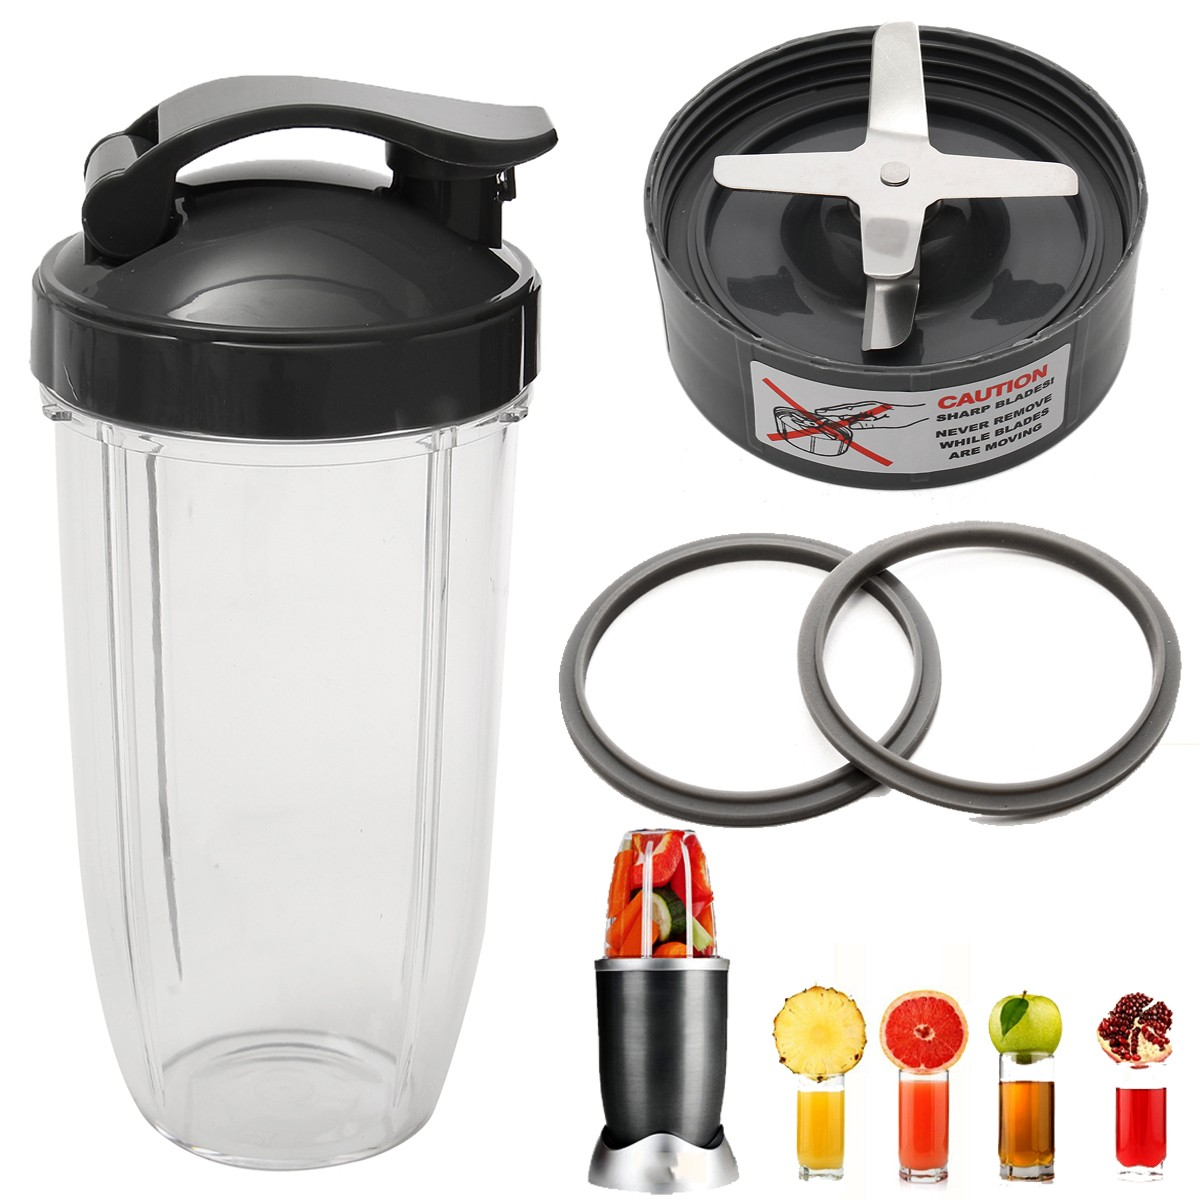 Stainless Steel Juicer Jar Set Blender Spare Parts Cup + Flip Top Lid + Extractor Blade + 2 Fitted Gaskets(China (Mainland))